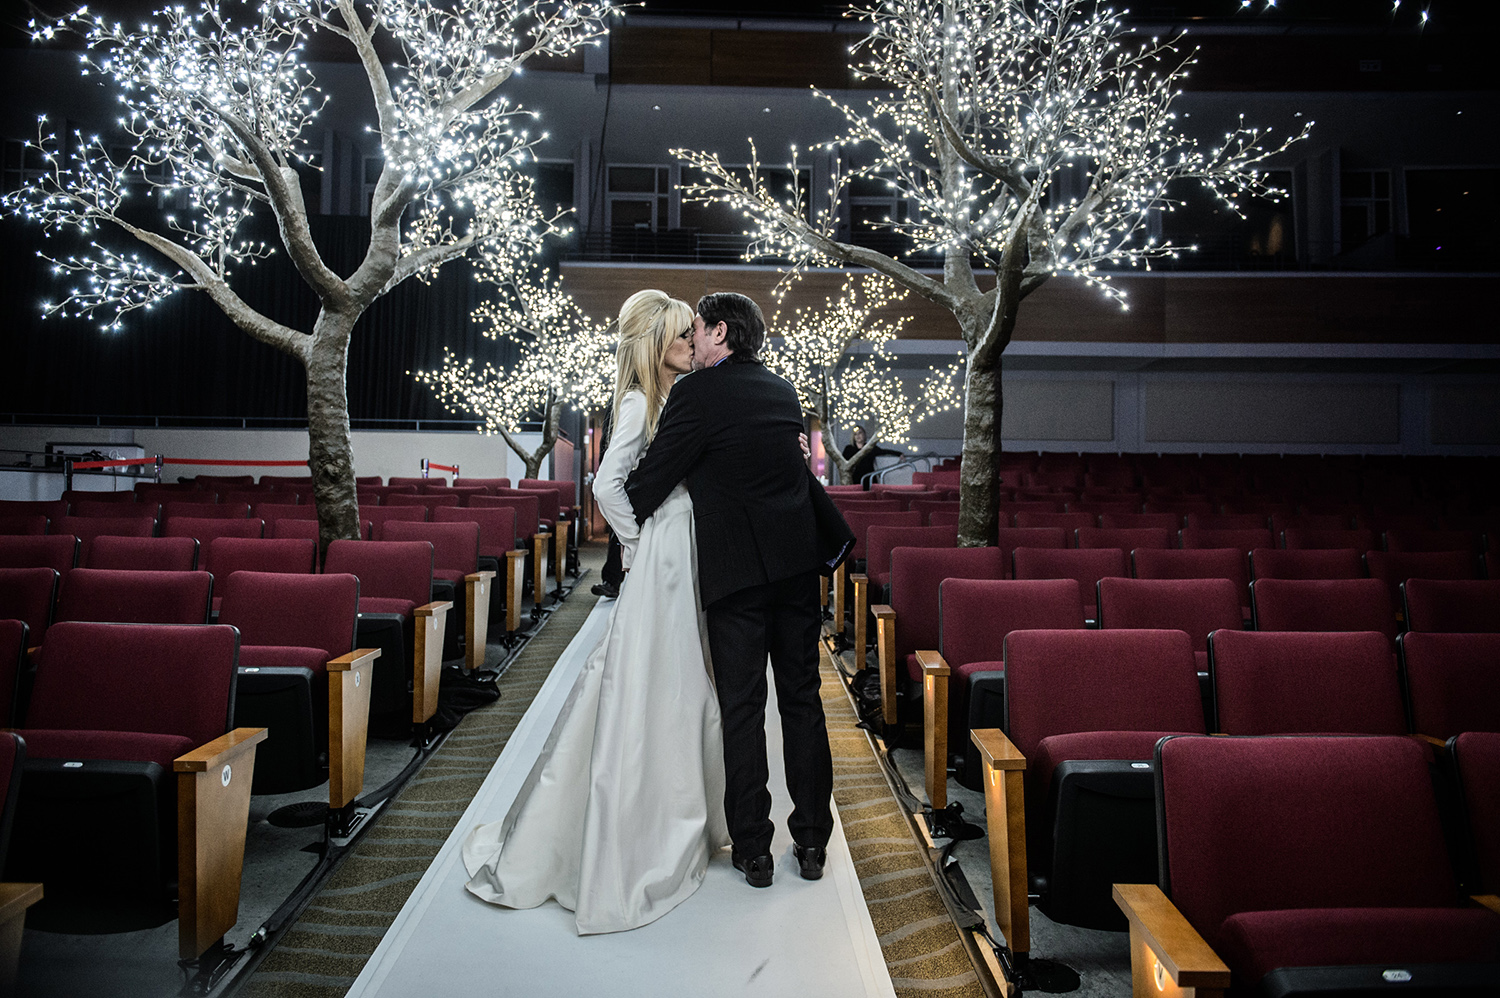 lighting, decor, rentals for wedding